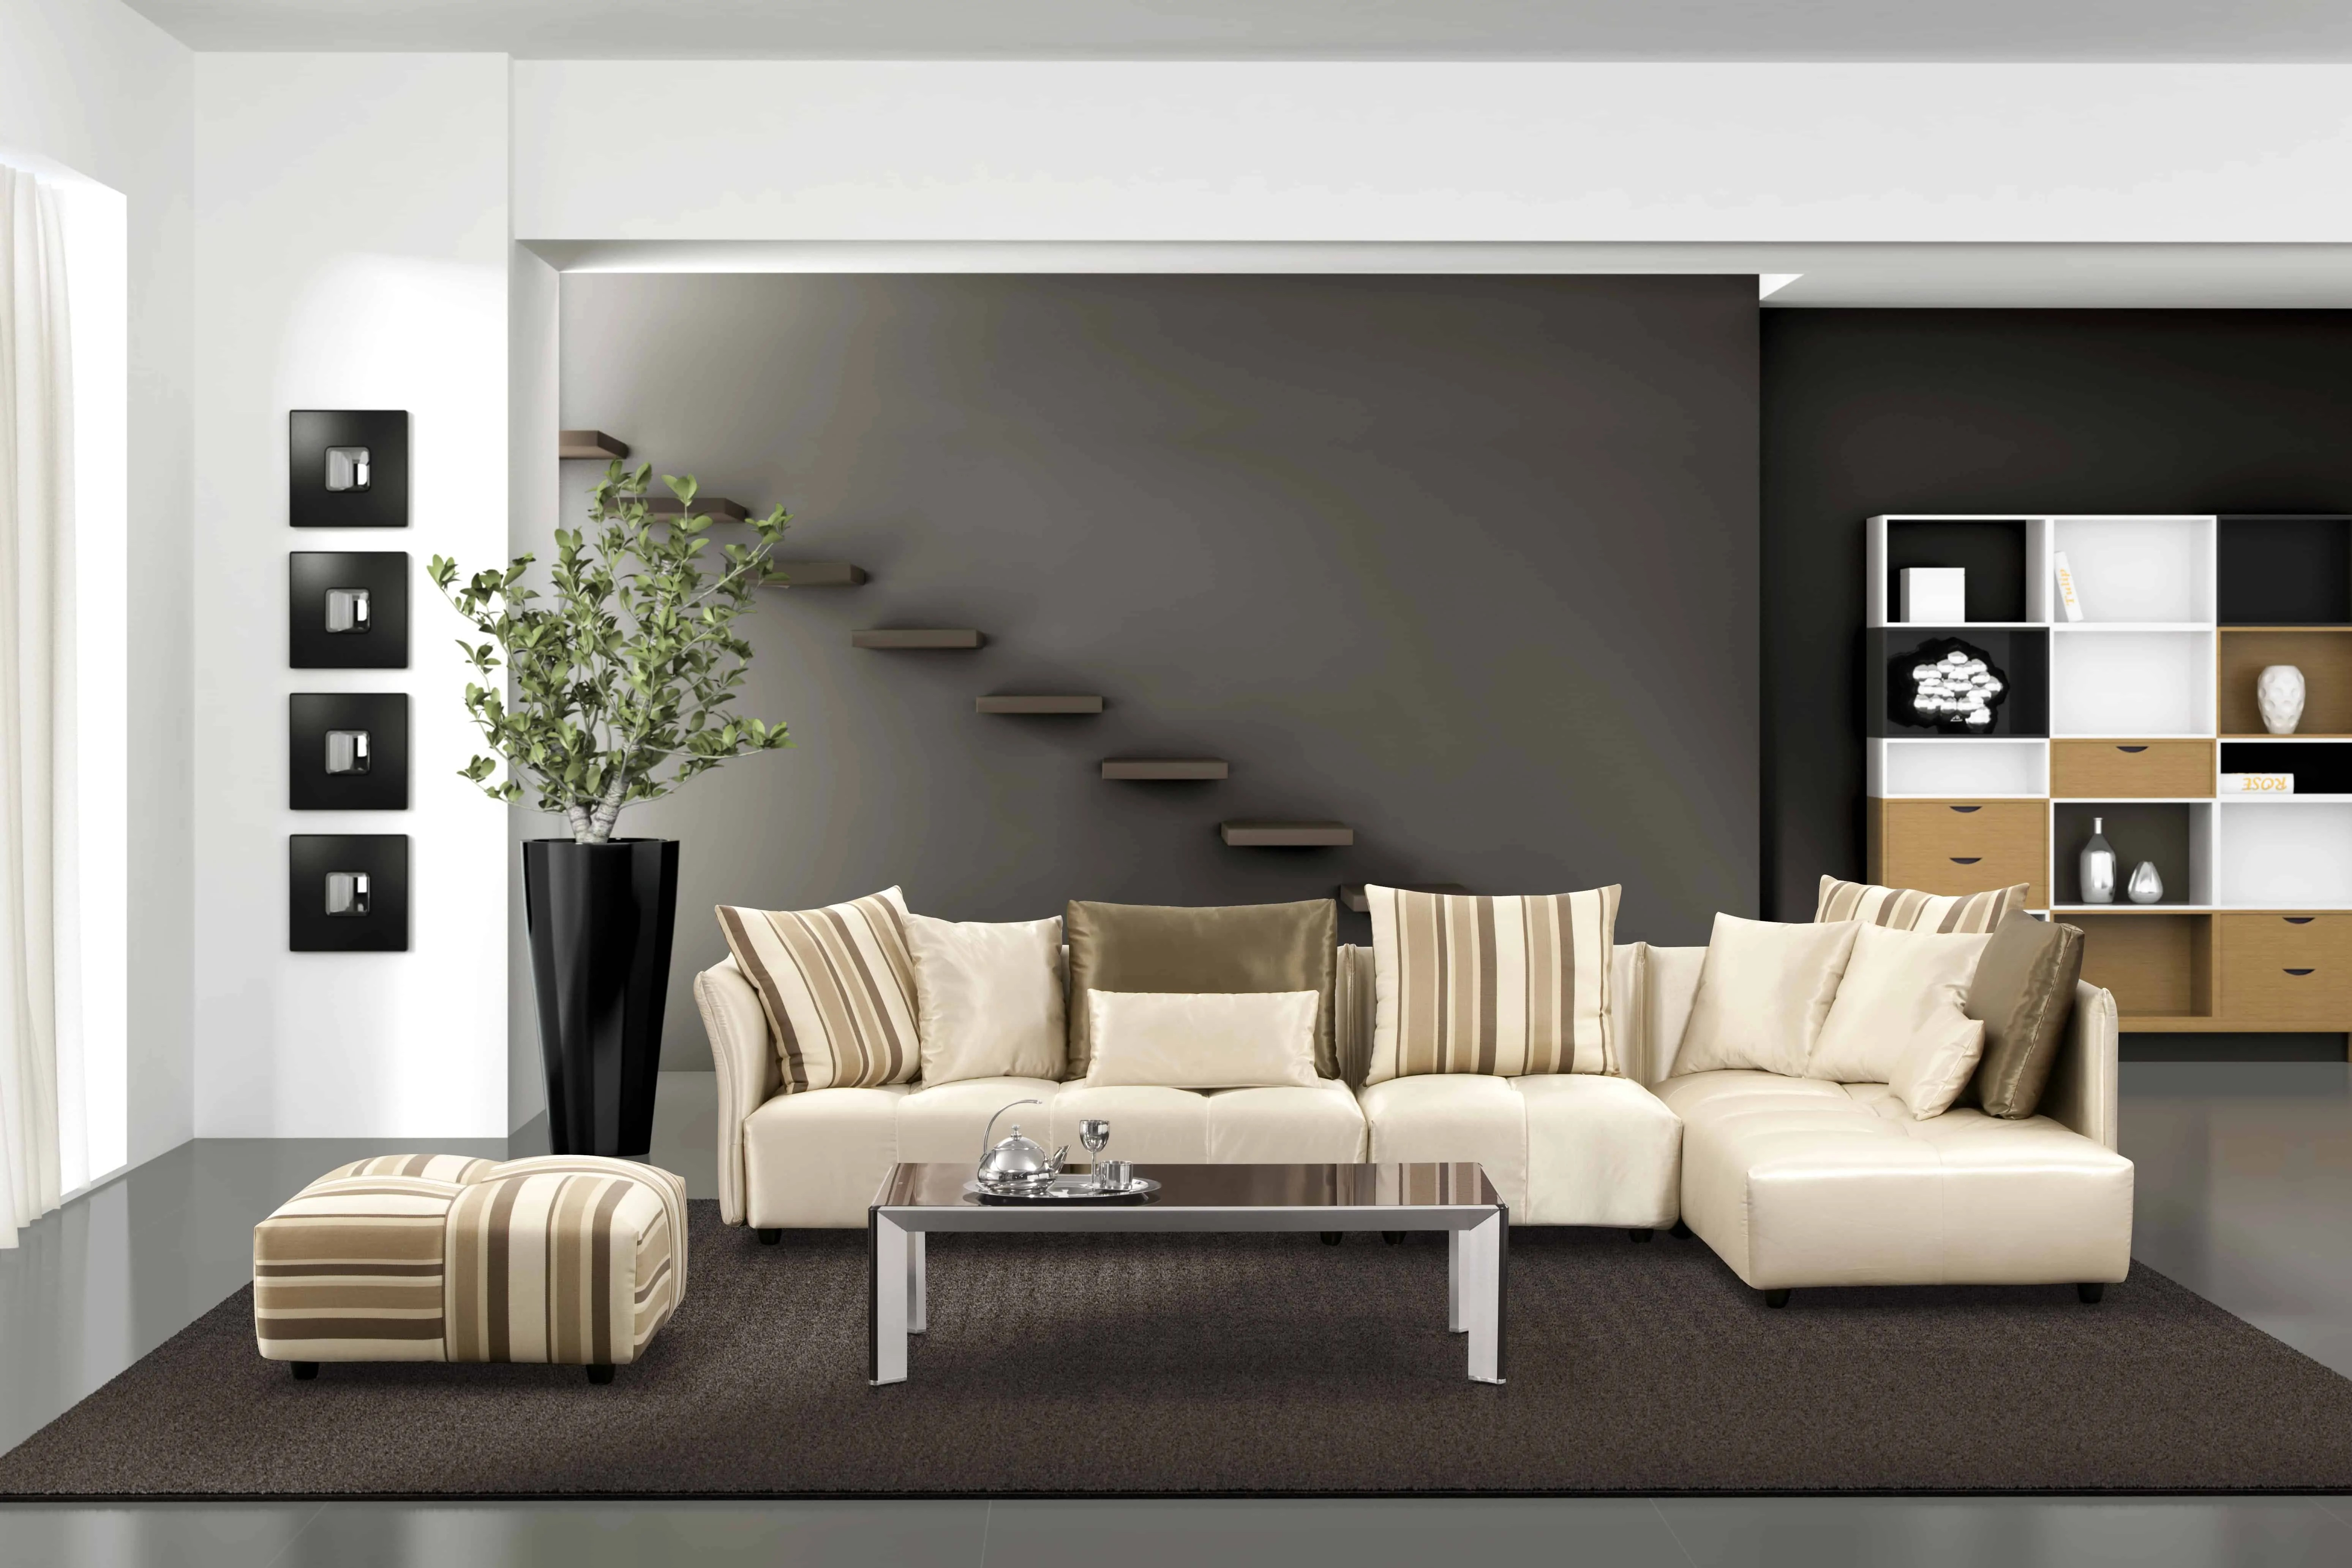 Living Room Paint Ideas with the Proper Color - Decoration ... on Room Painting id=51949